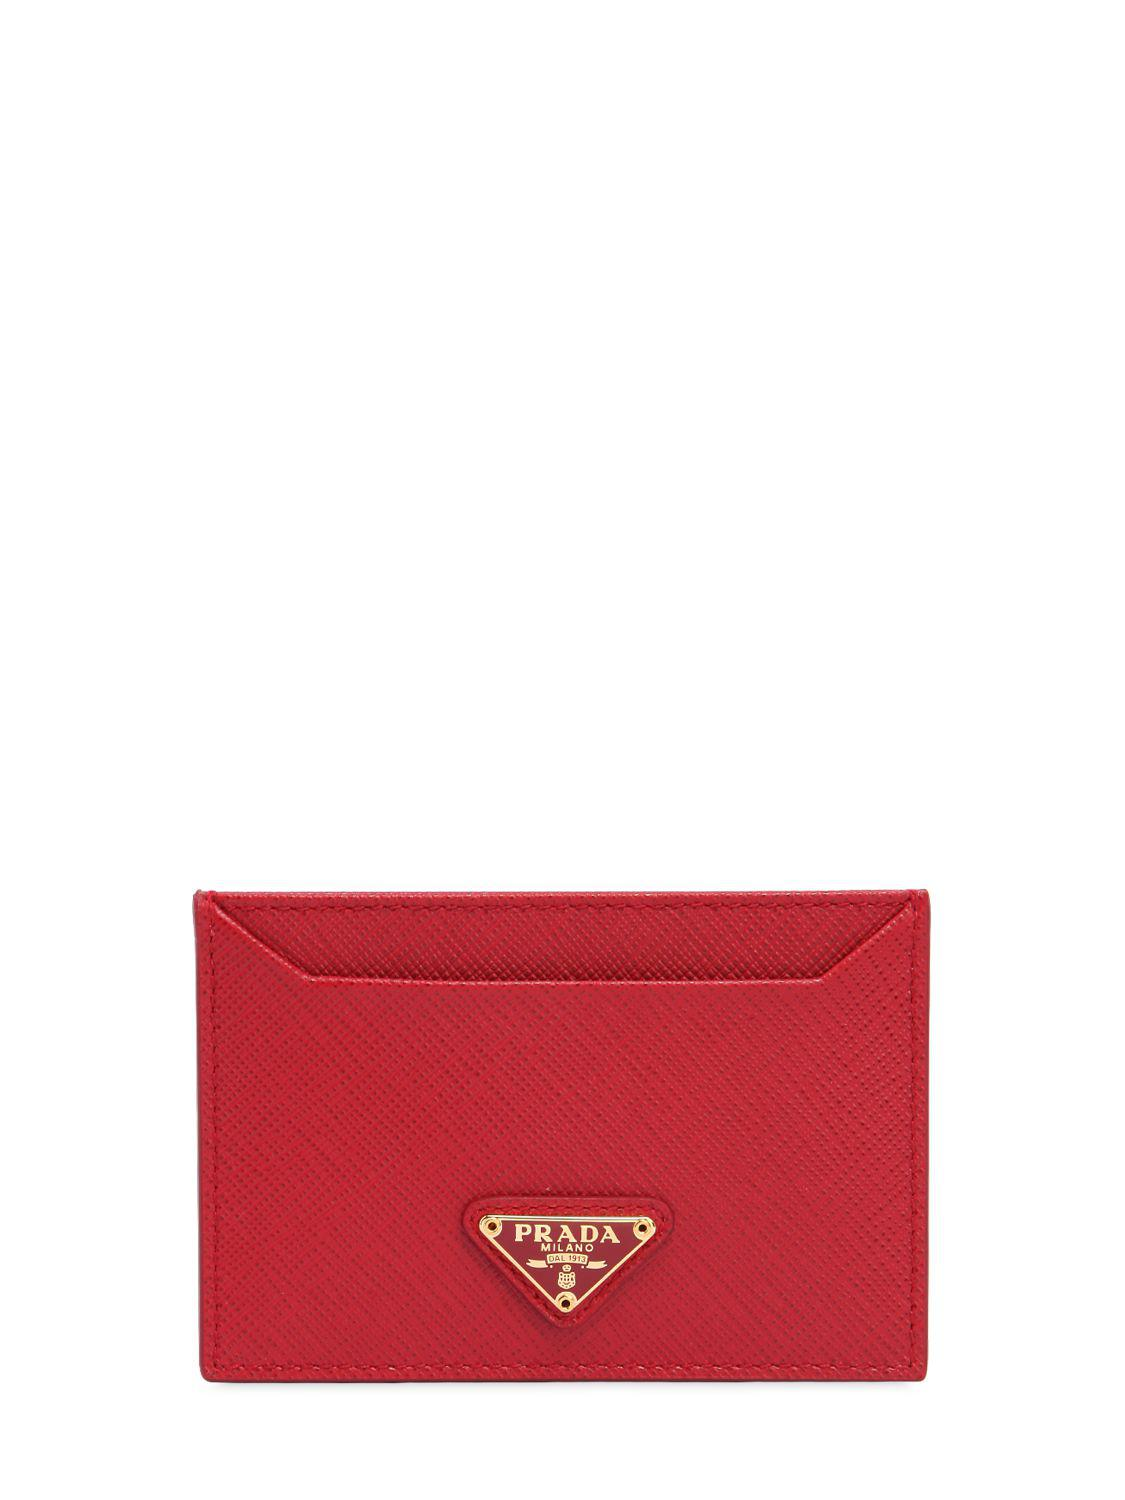 ea0665d7f7b6 Prada Saffiano Leather Card Holder in Red - Save 10.285714285714292 ...